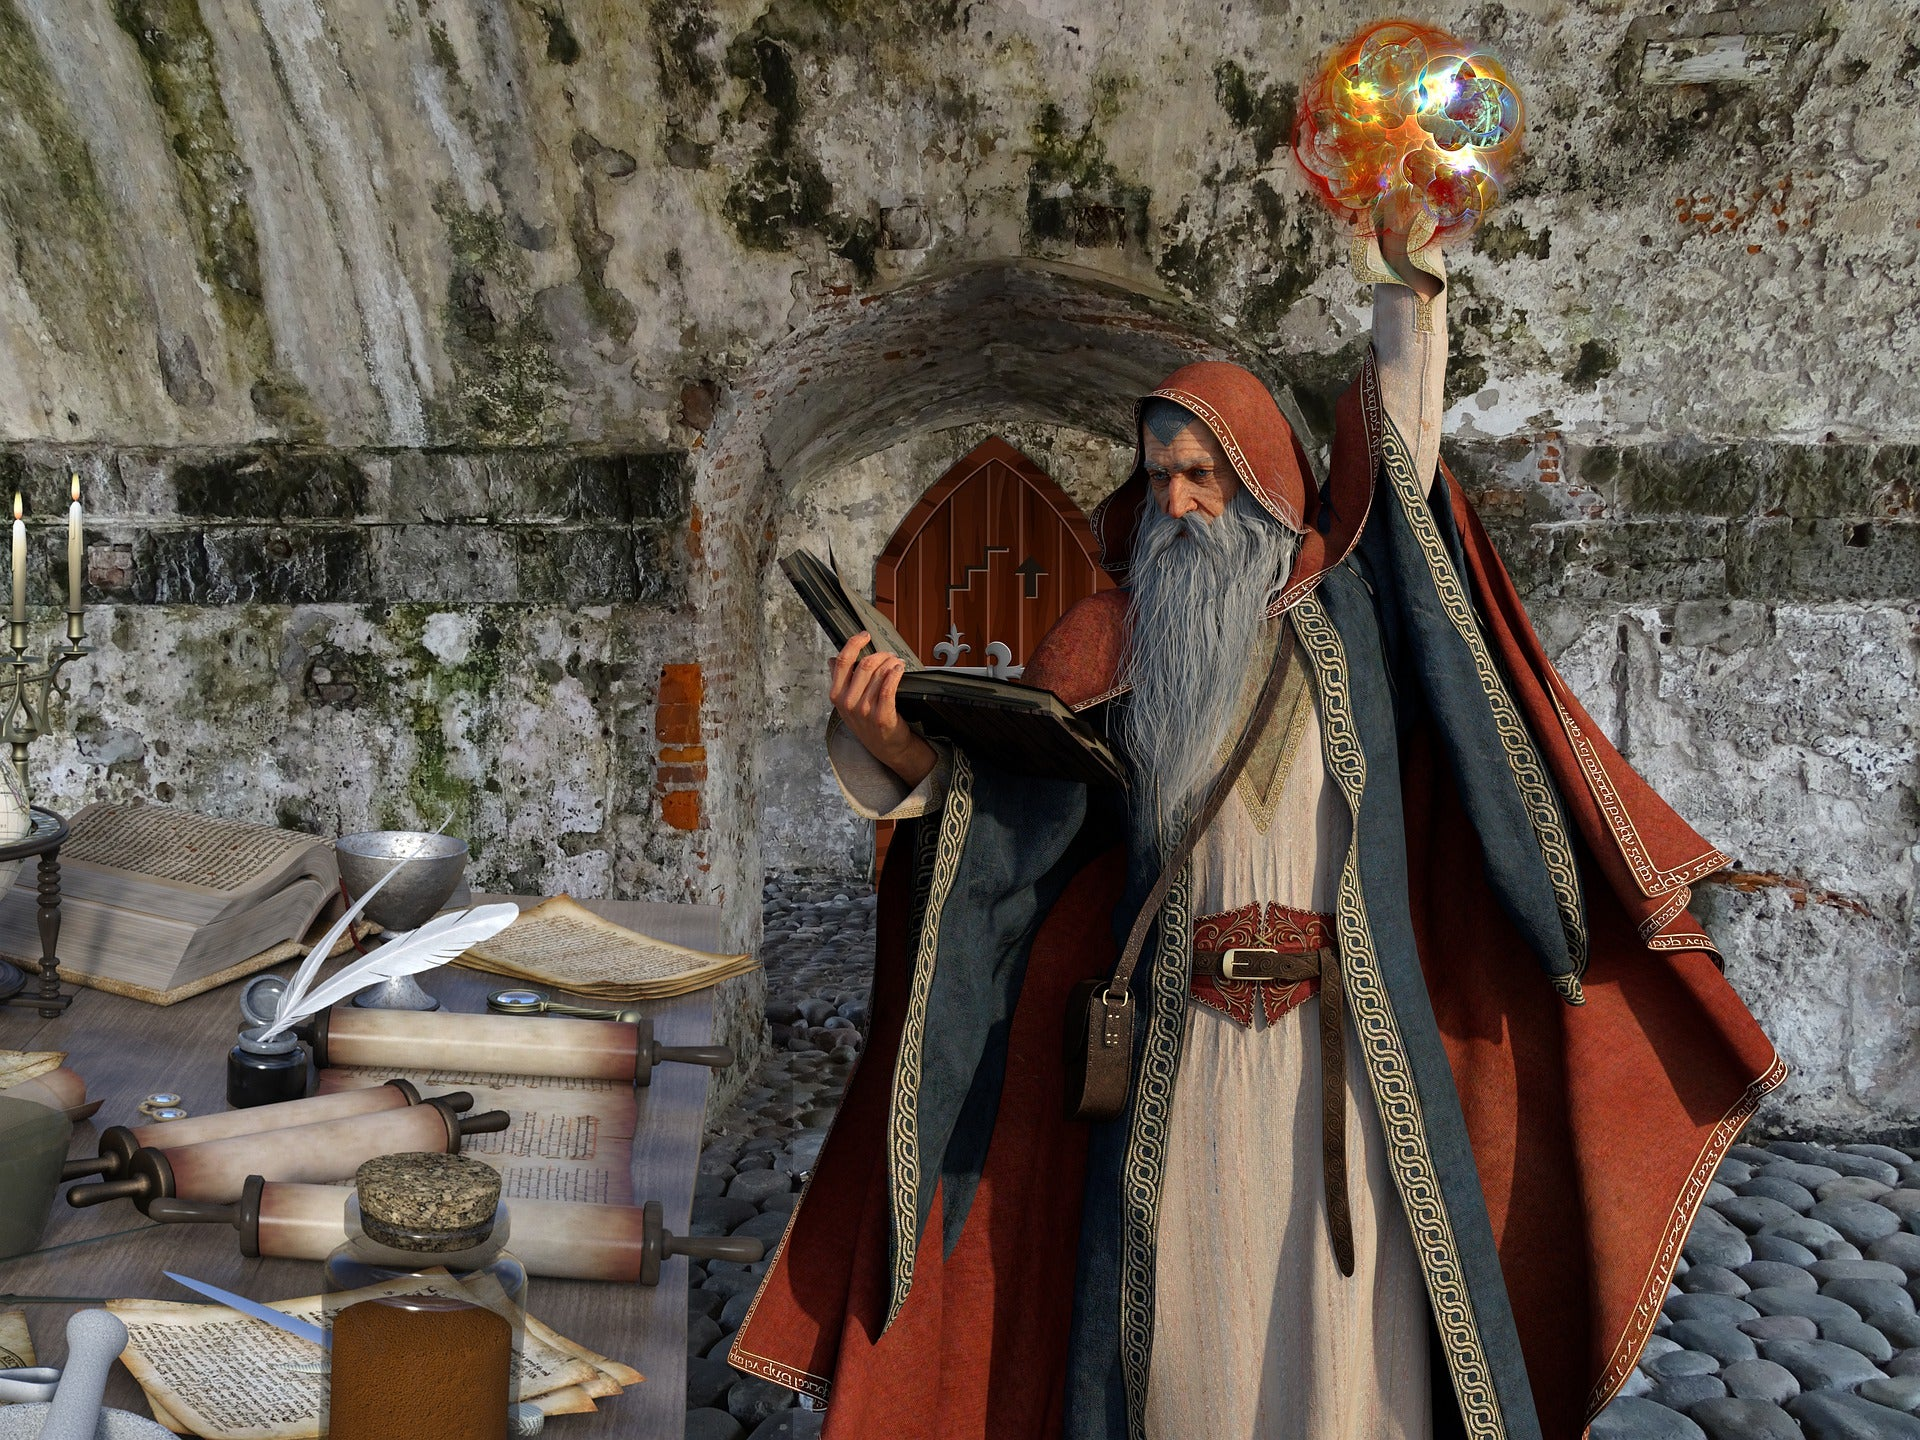 The Legendary Origins of Merlin The Welsh Wizard